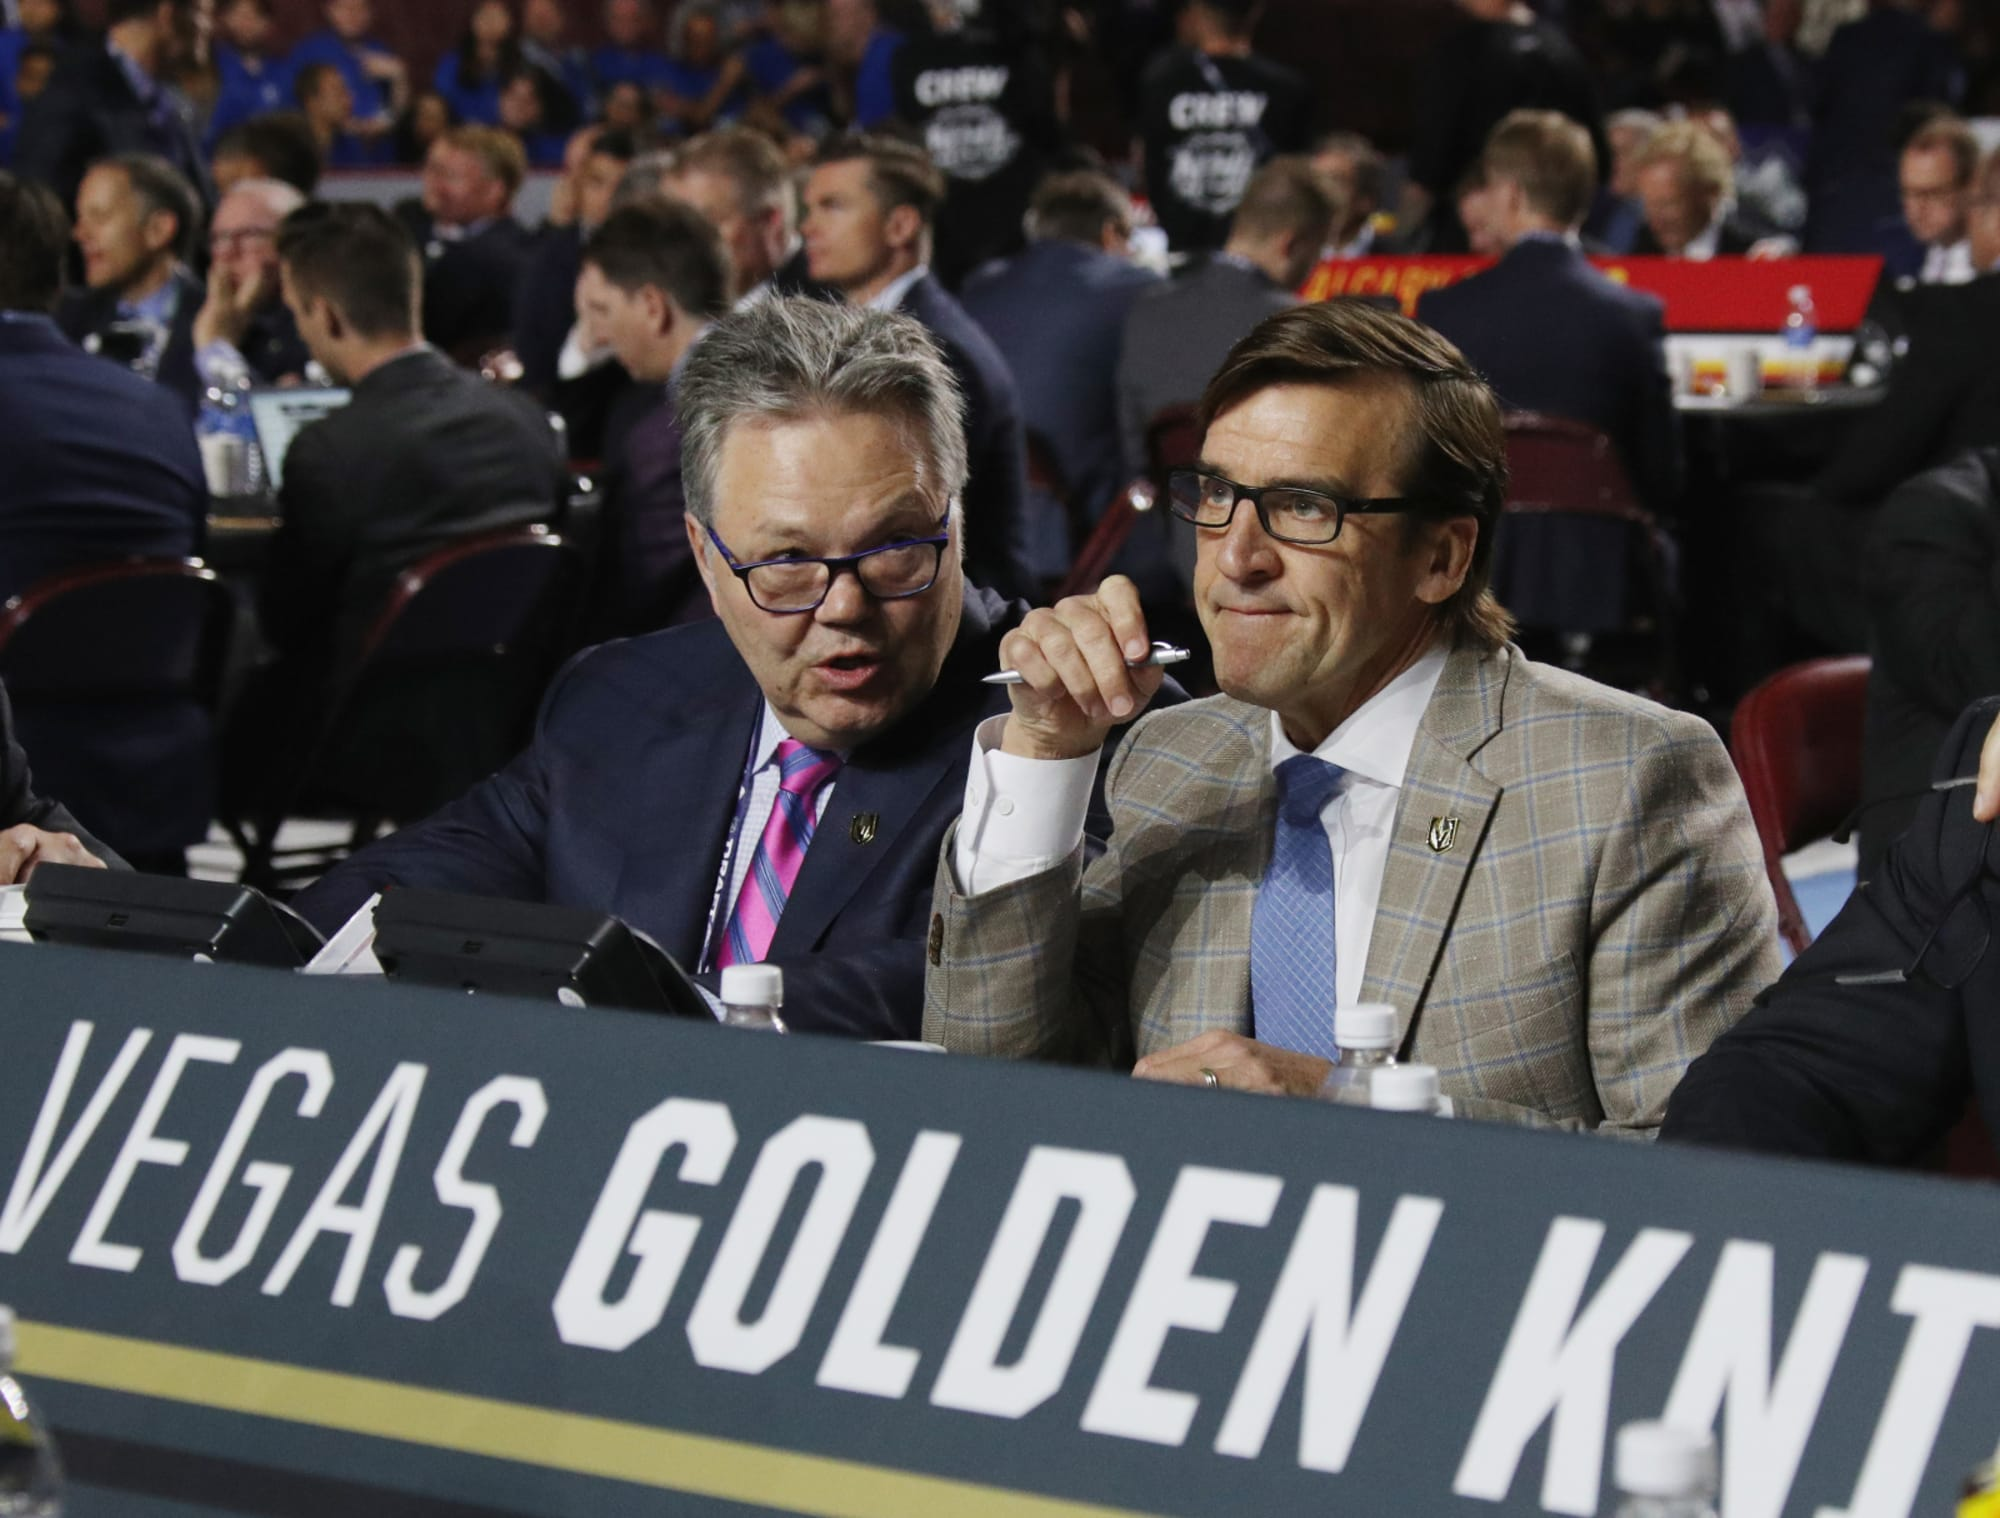 Vegas Golden Knights reveal new AHL name and logo